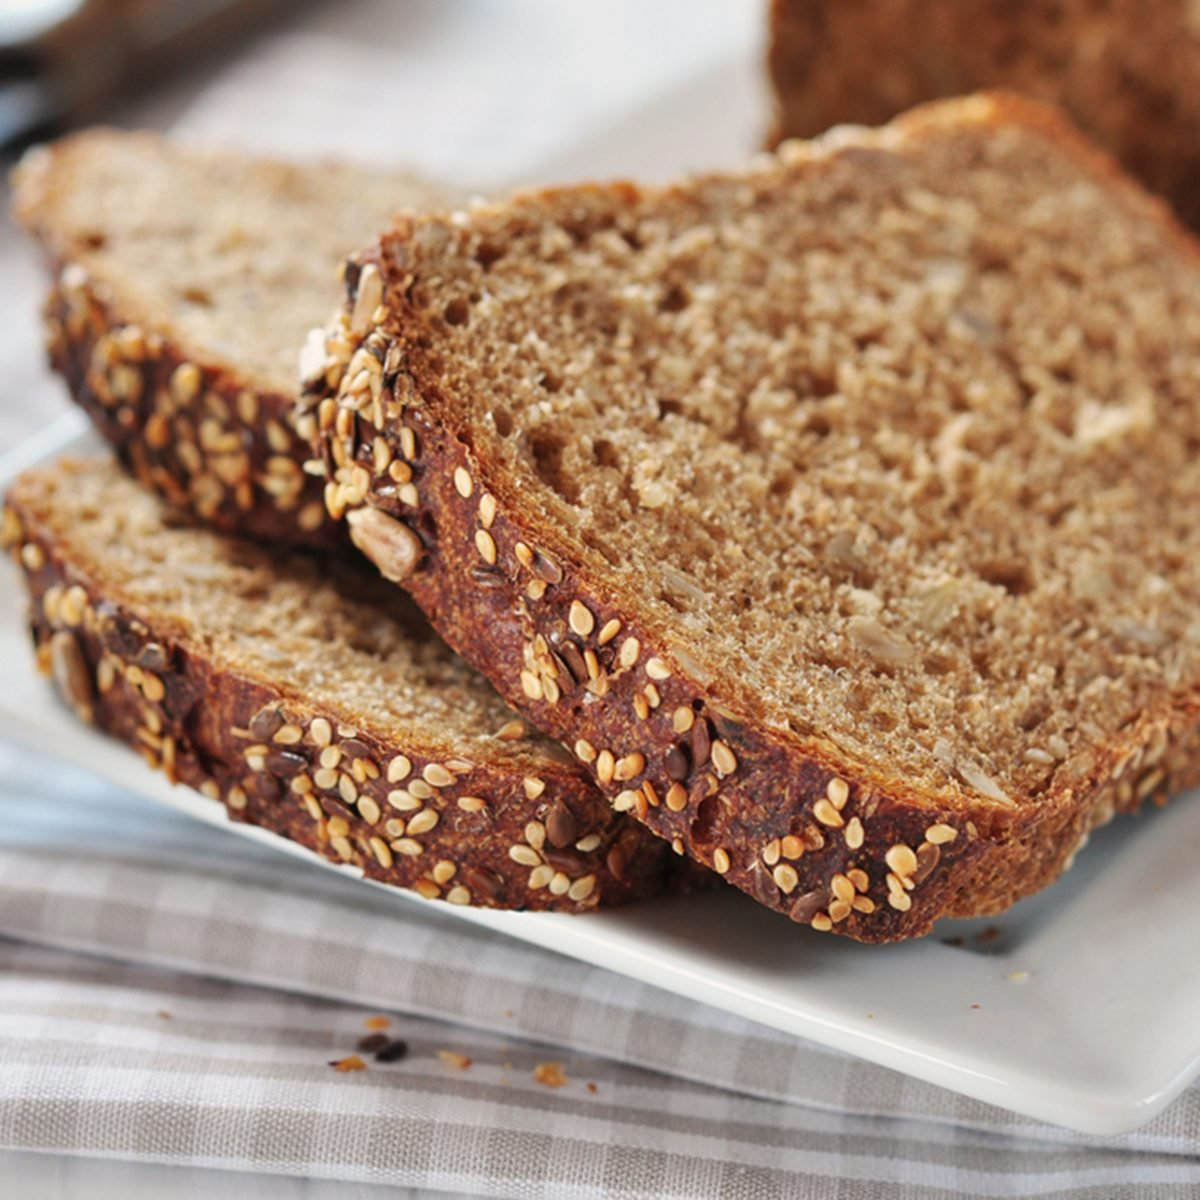 Sliced bread with sunflower seeds and sesame on a plate